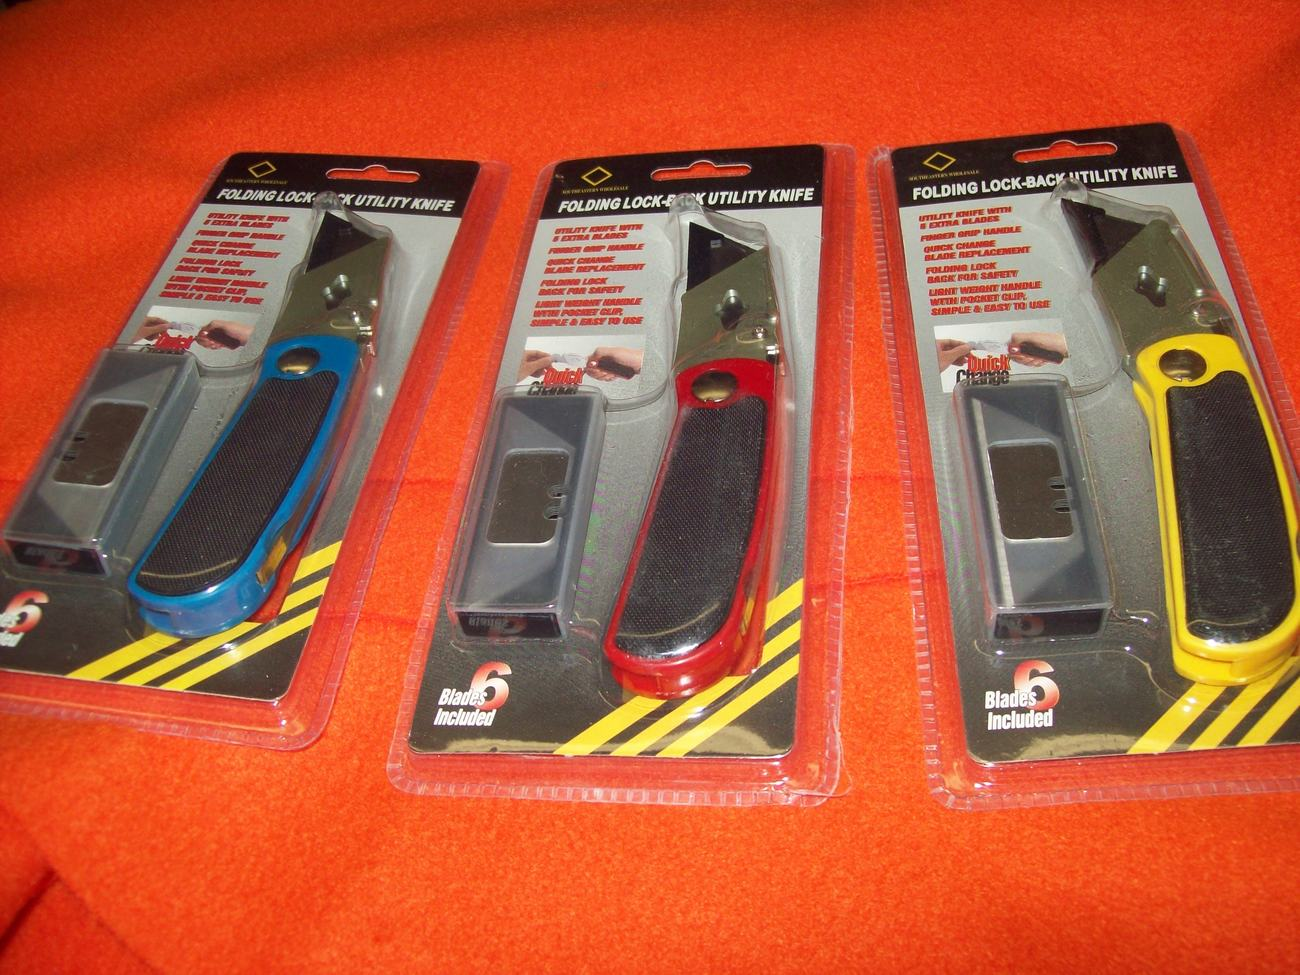 YELLOW FOLDING LOCK-BACK UTILITY BOX CUTTER KNIFE WITH 6 QUICK CHANGE BLADES